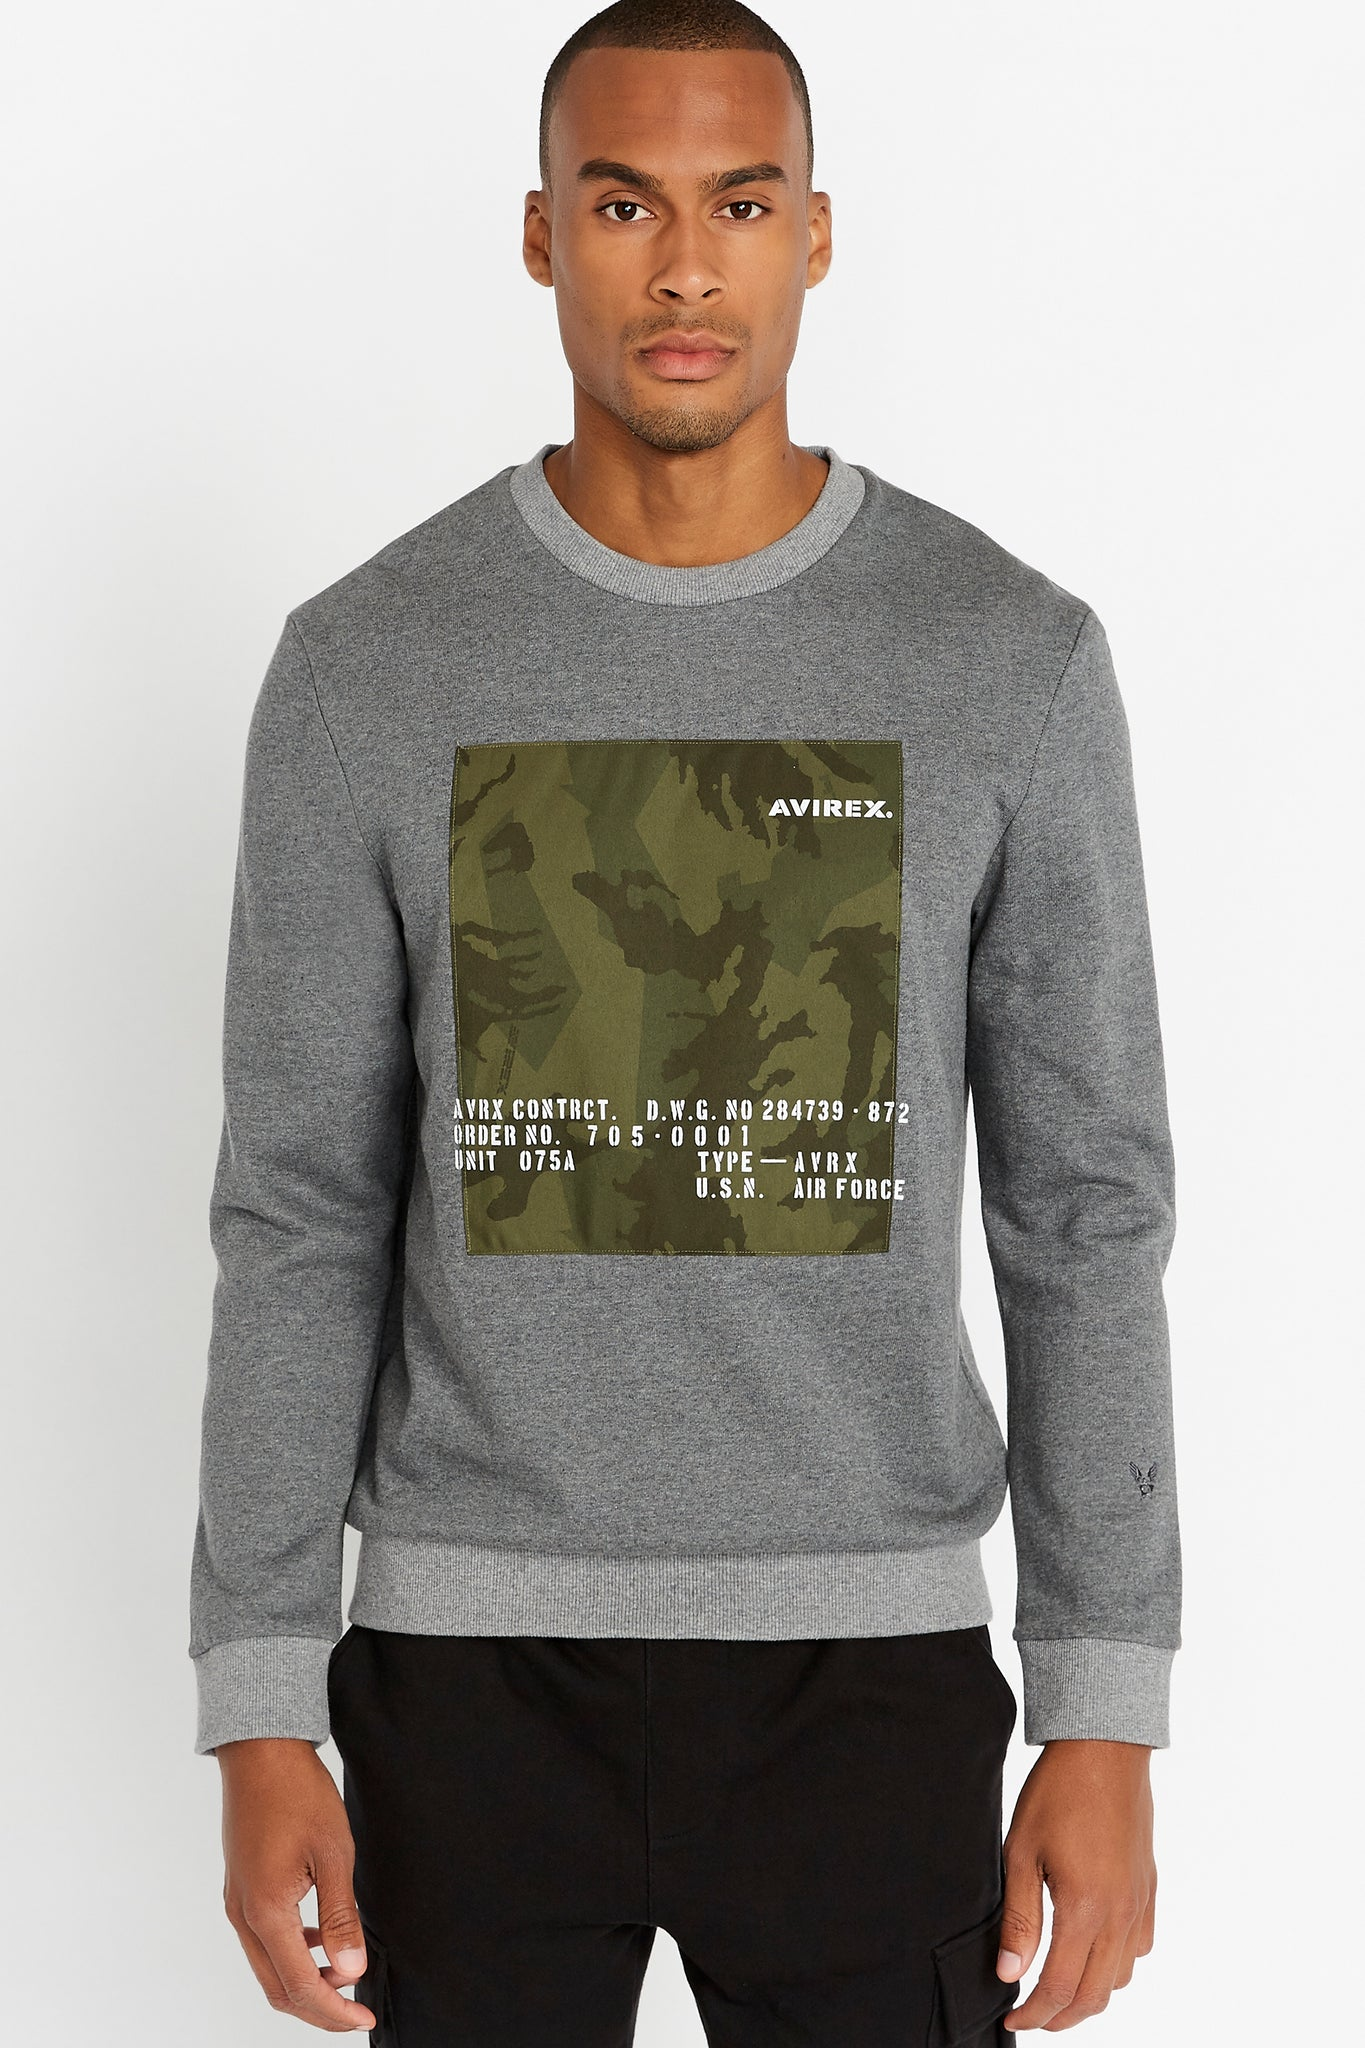 Men wearing a grey long sleeve crew neck sweater with front camo graphics and wing-star embroidery on left sleeve